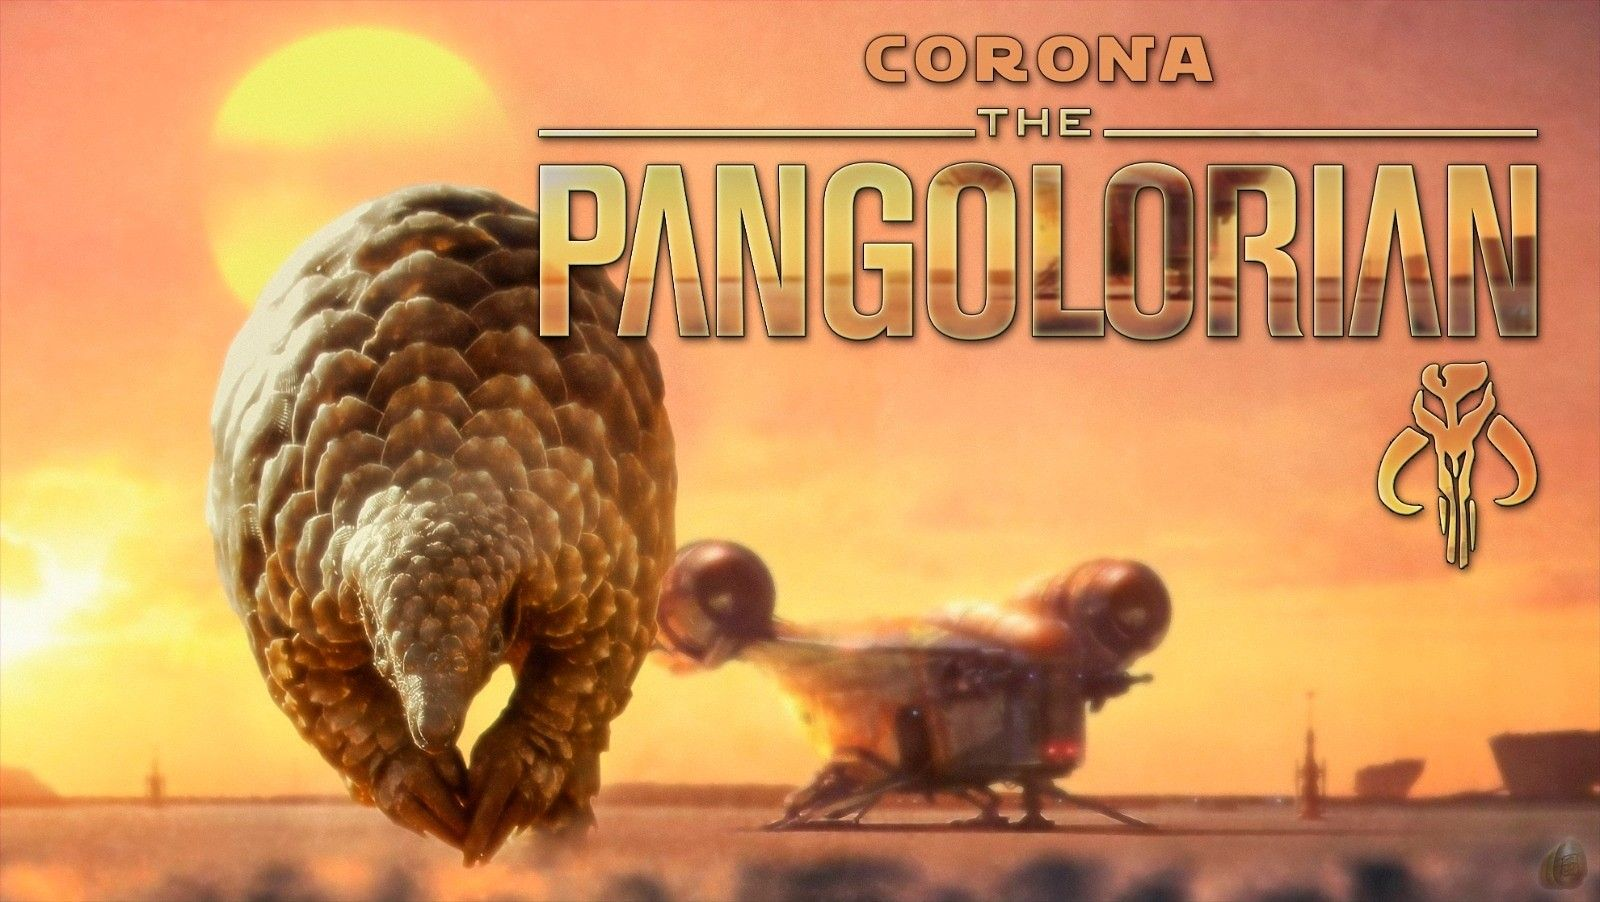 Coming Soon To Cinemas And Fine Restaurants In Your City The Pangolorian Legendary Pictures Interstellar Movie Sci Fi Movies